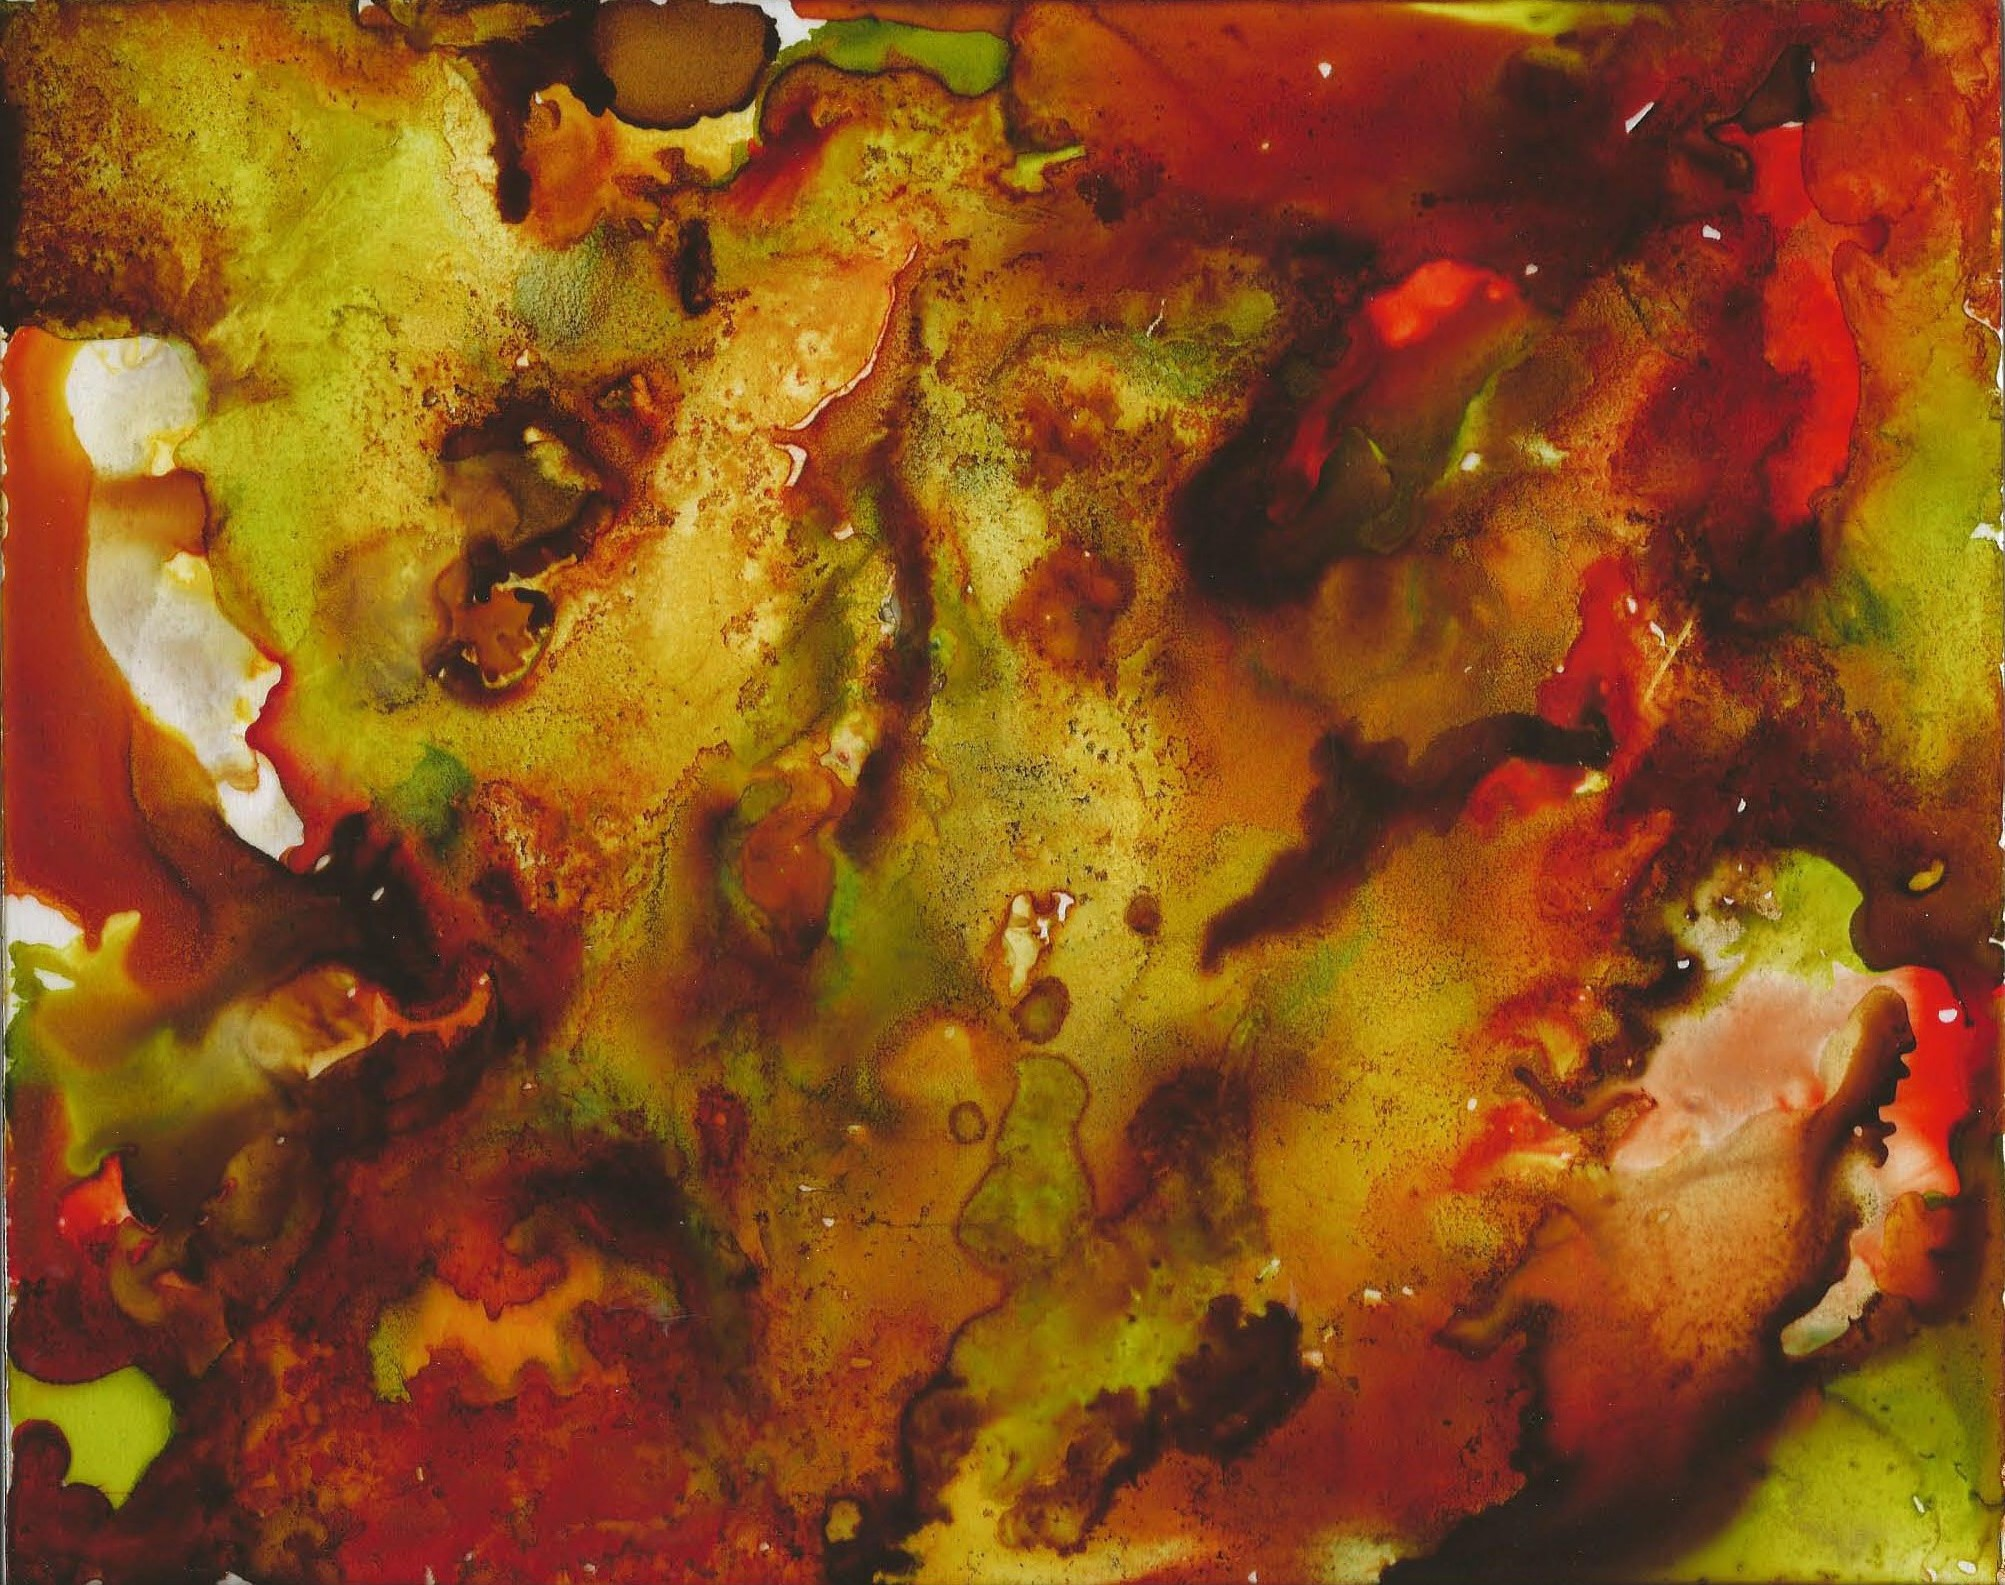 Rustic - Alcohol Ink 8 X 10 - $125